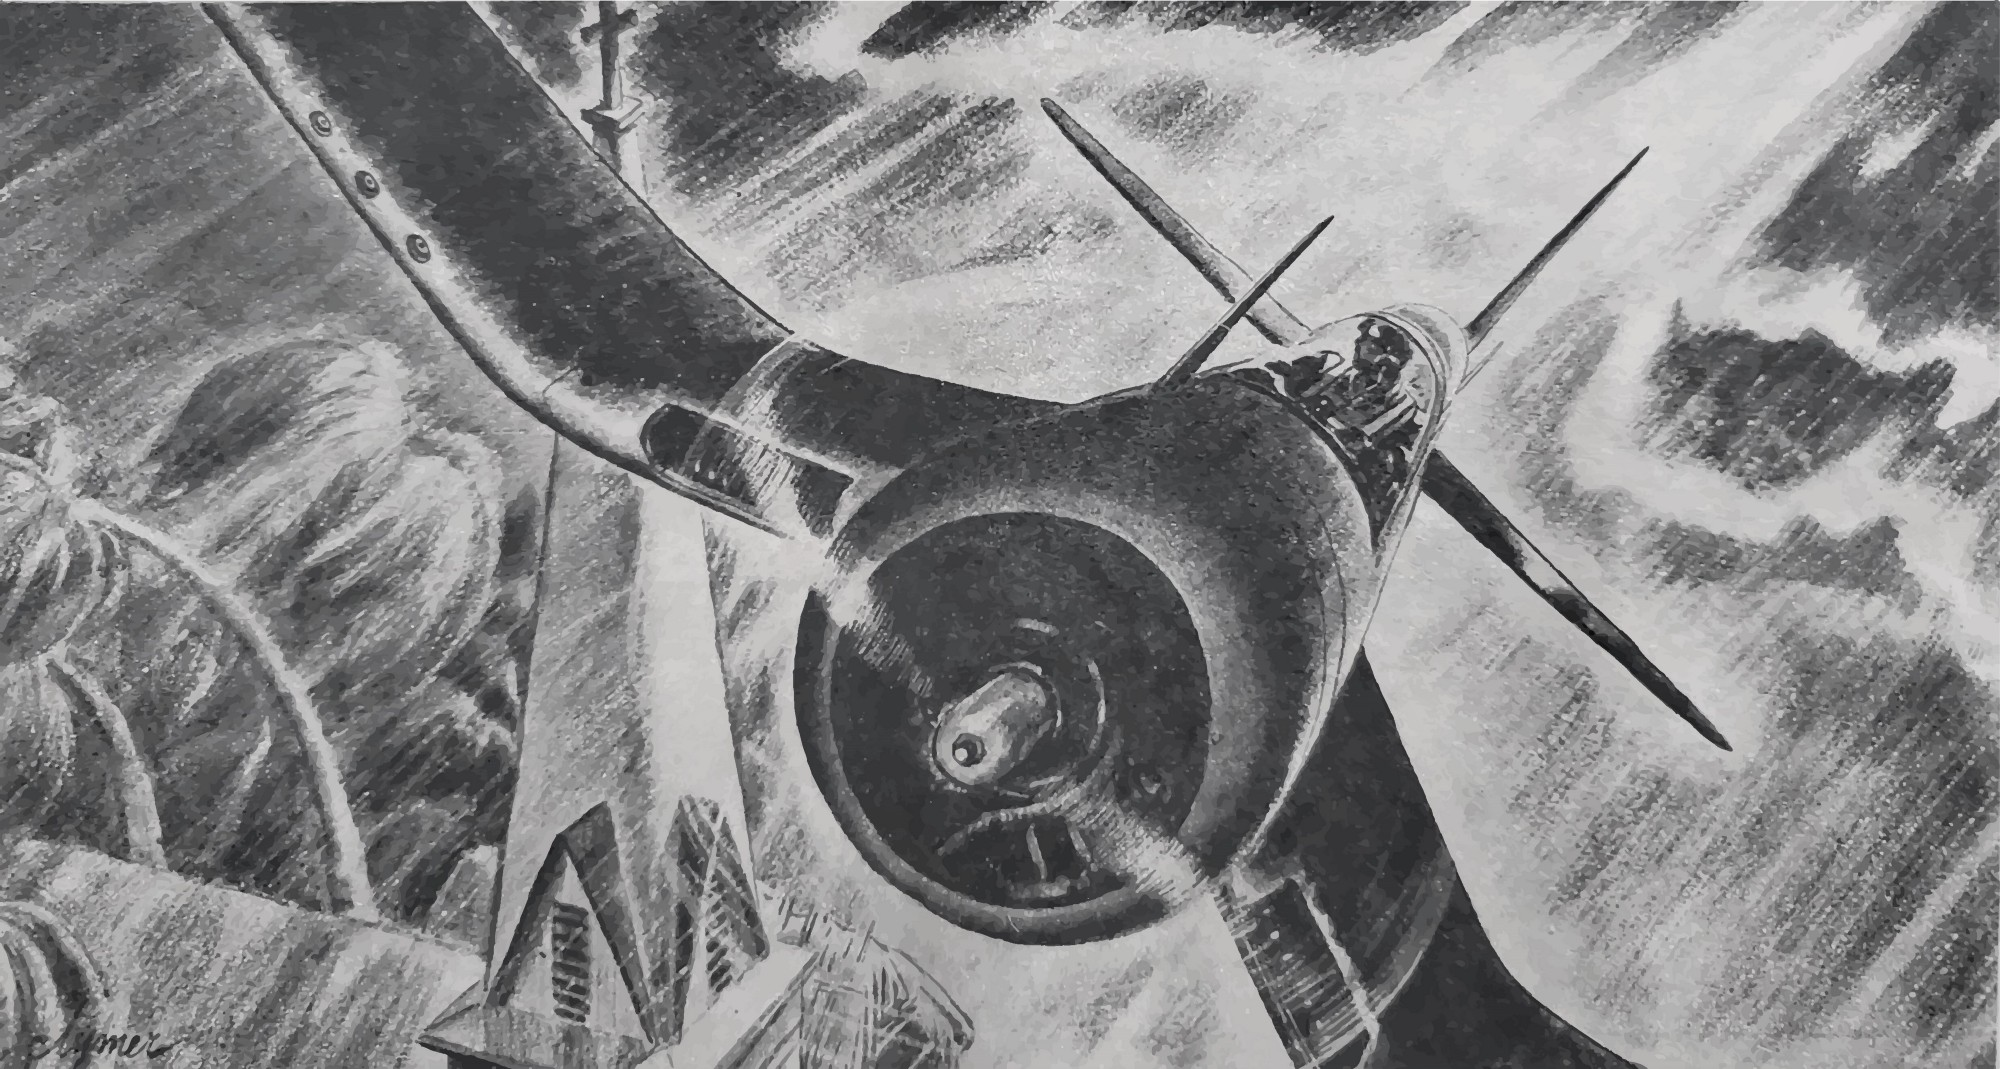 Illustration by John Ford Clymer for Leatherneck Magazine. 1945. Corsair flying over a church steeple through a cyclone.